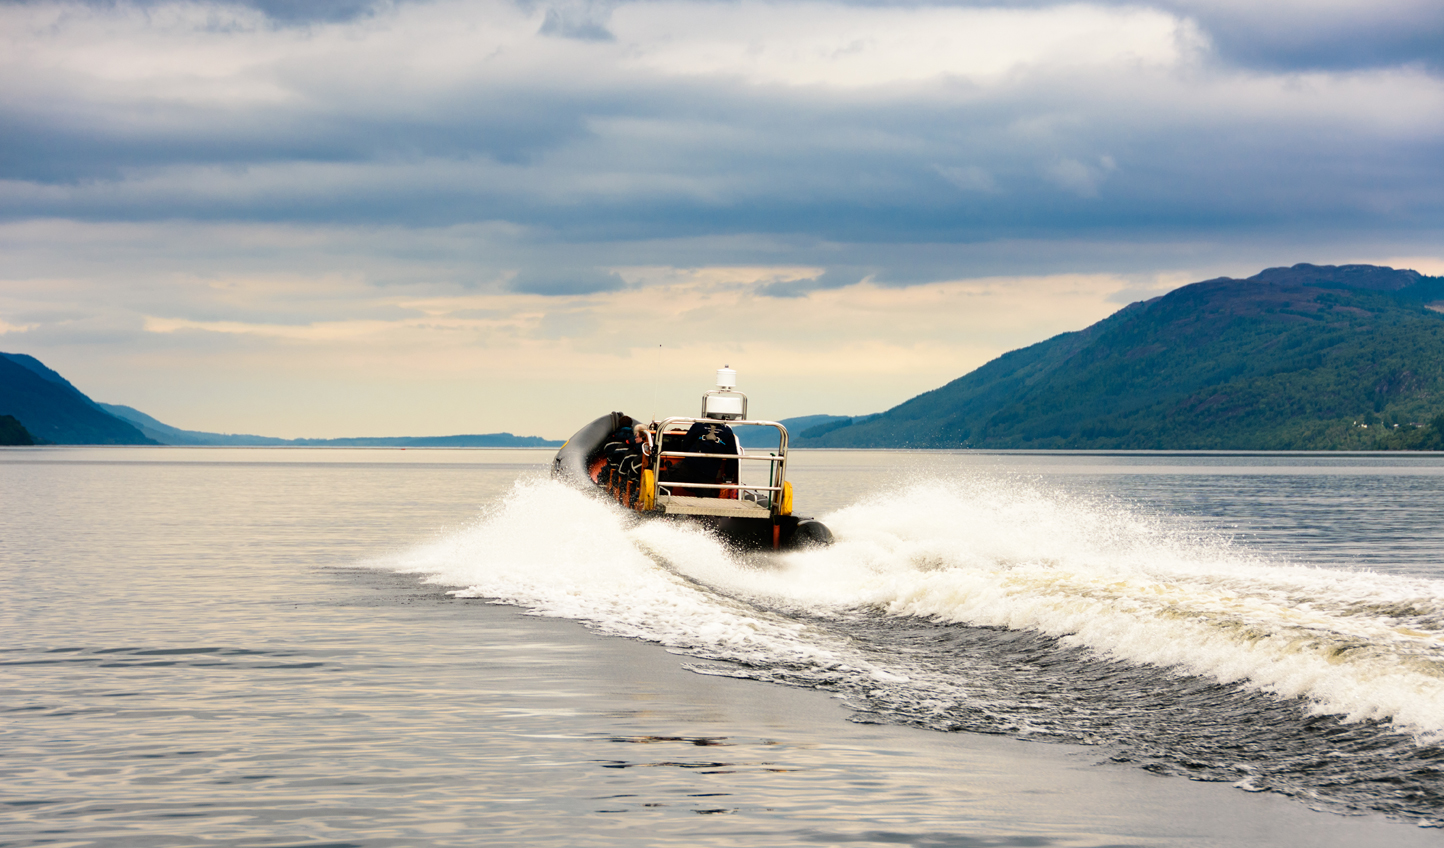 Discover the Hebrides onboard private RIB boats